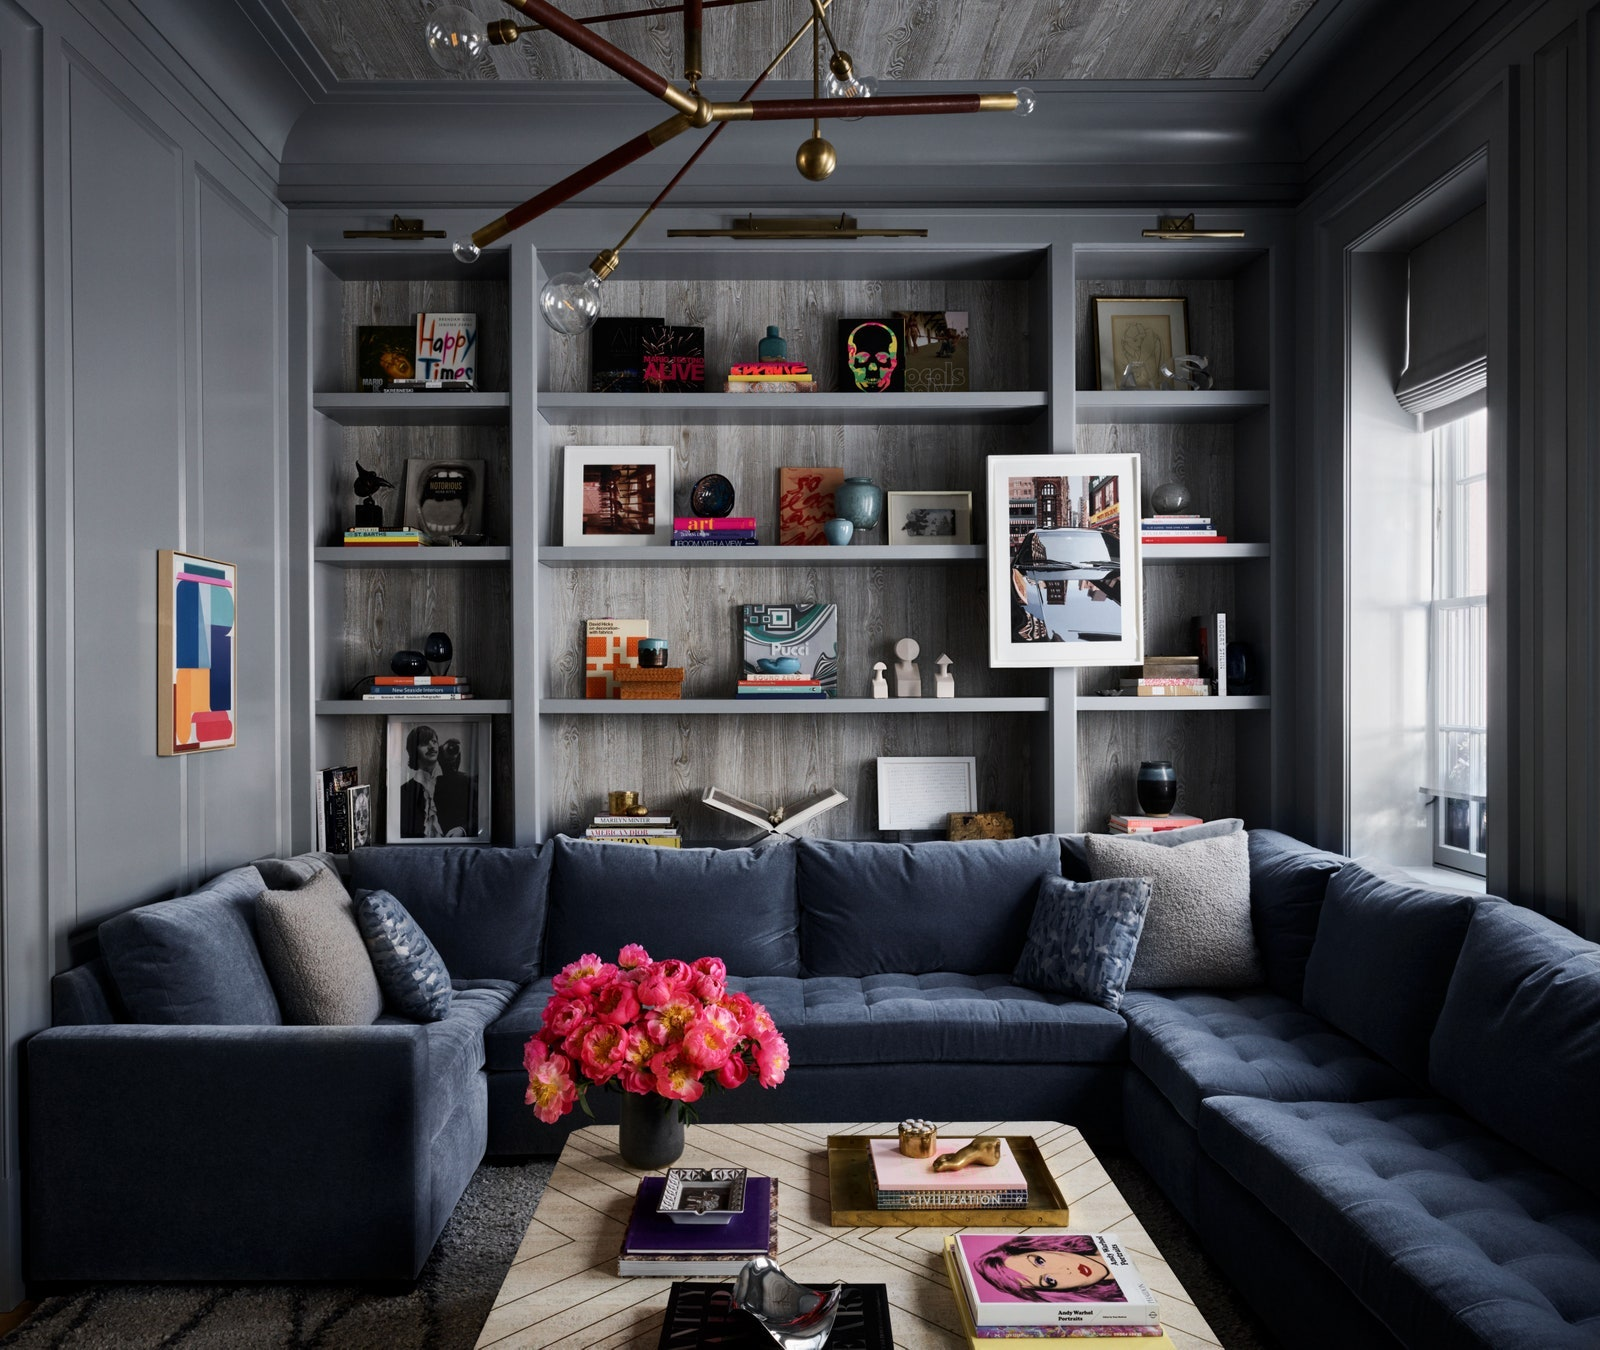 A living room enveloped in cool gray